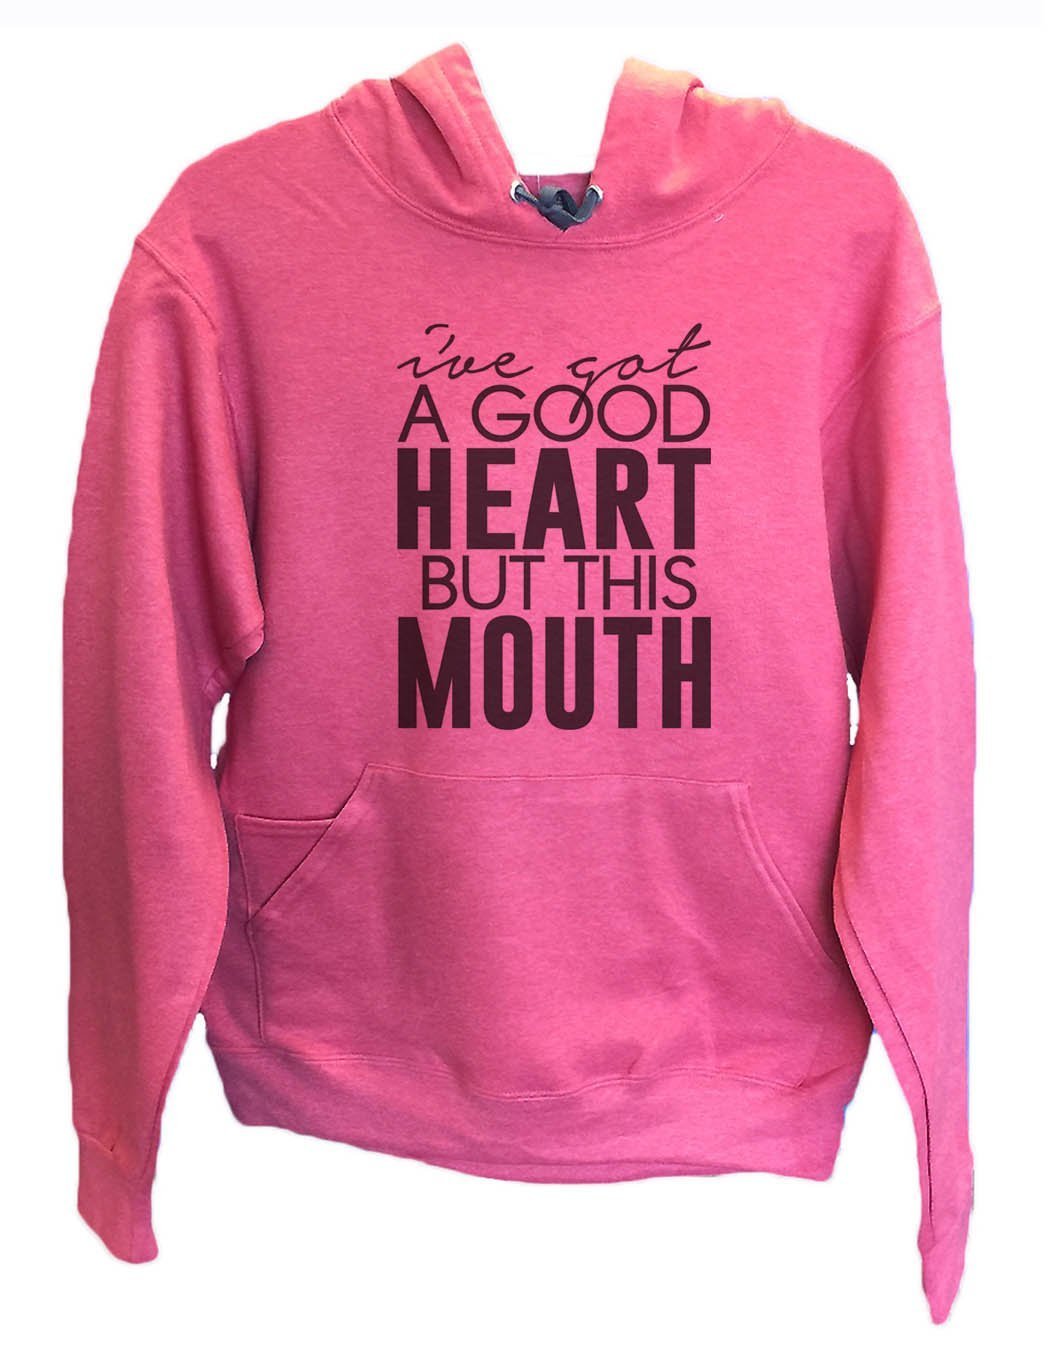 UNISEX HOODIE - I've Got A Good Heart But This Mouth - FUNNY MENS AND WOMENS HOODED SWEATSHIRTS - 2148 Funny Shirt Small / Cranberry Red